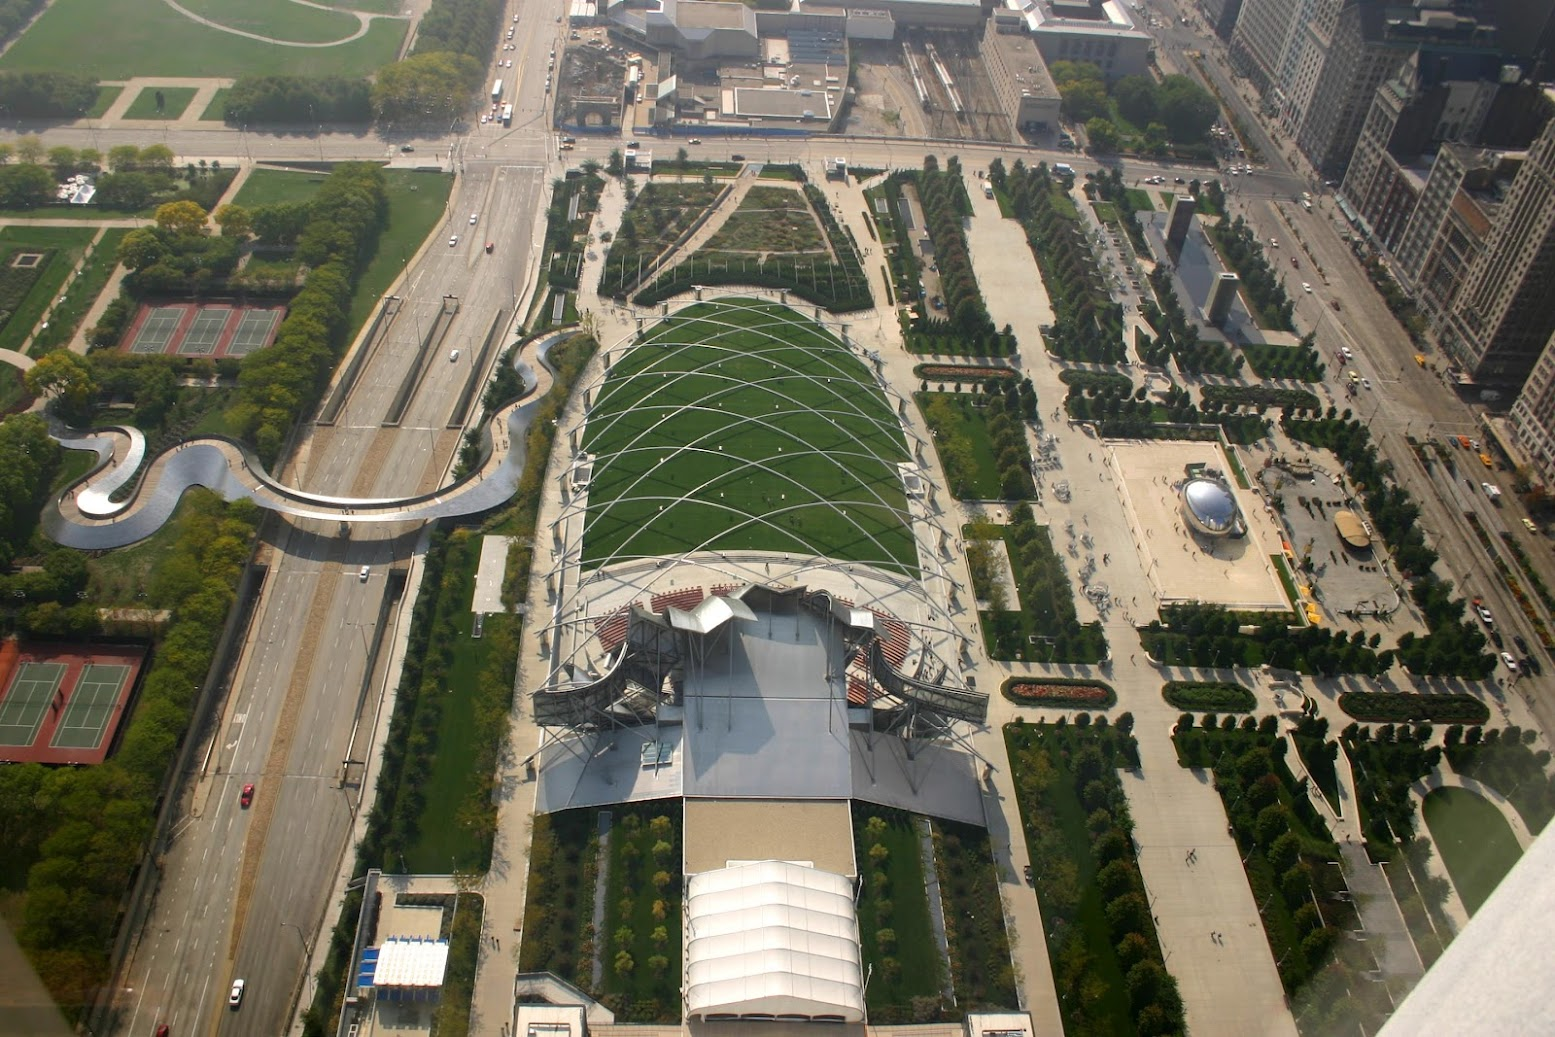 350 E Monroe St, Chicago, Illinois 60601, Stati Uniti: [MILLENNIUM PARK IN CHICAGO]